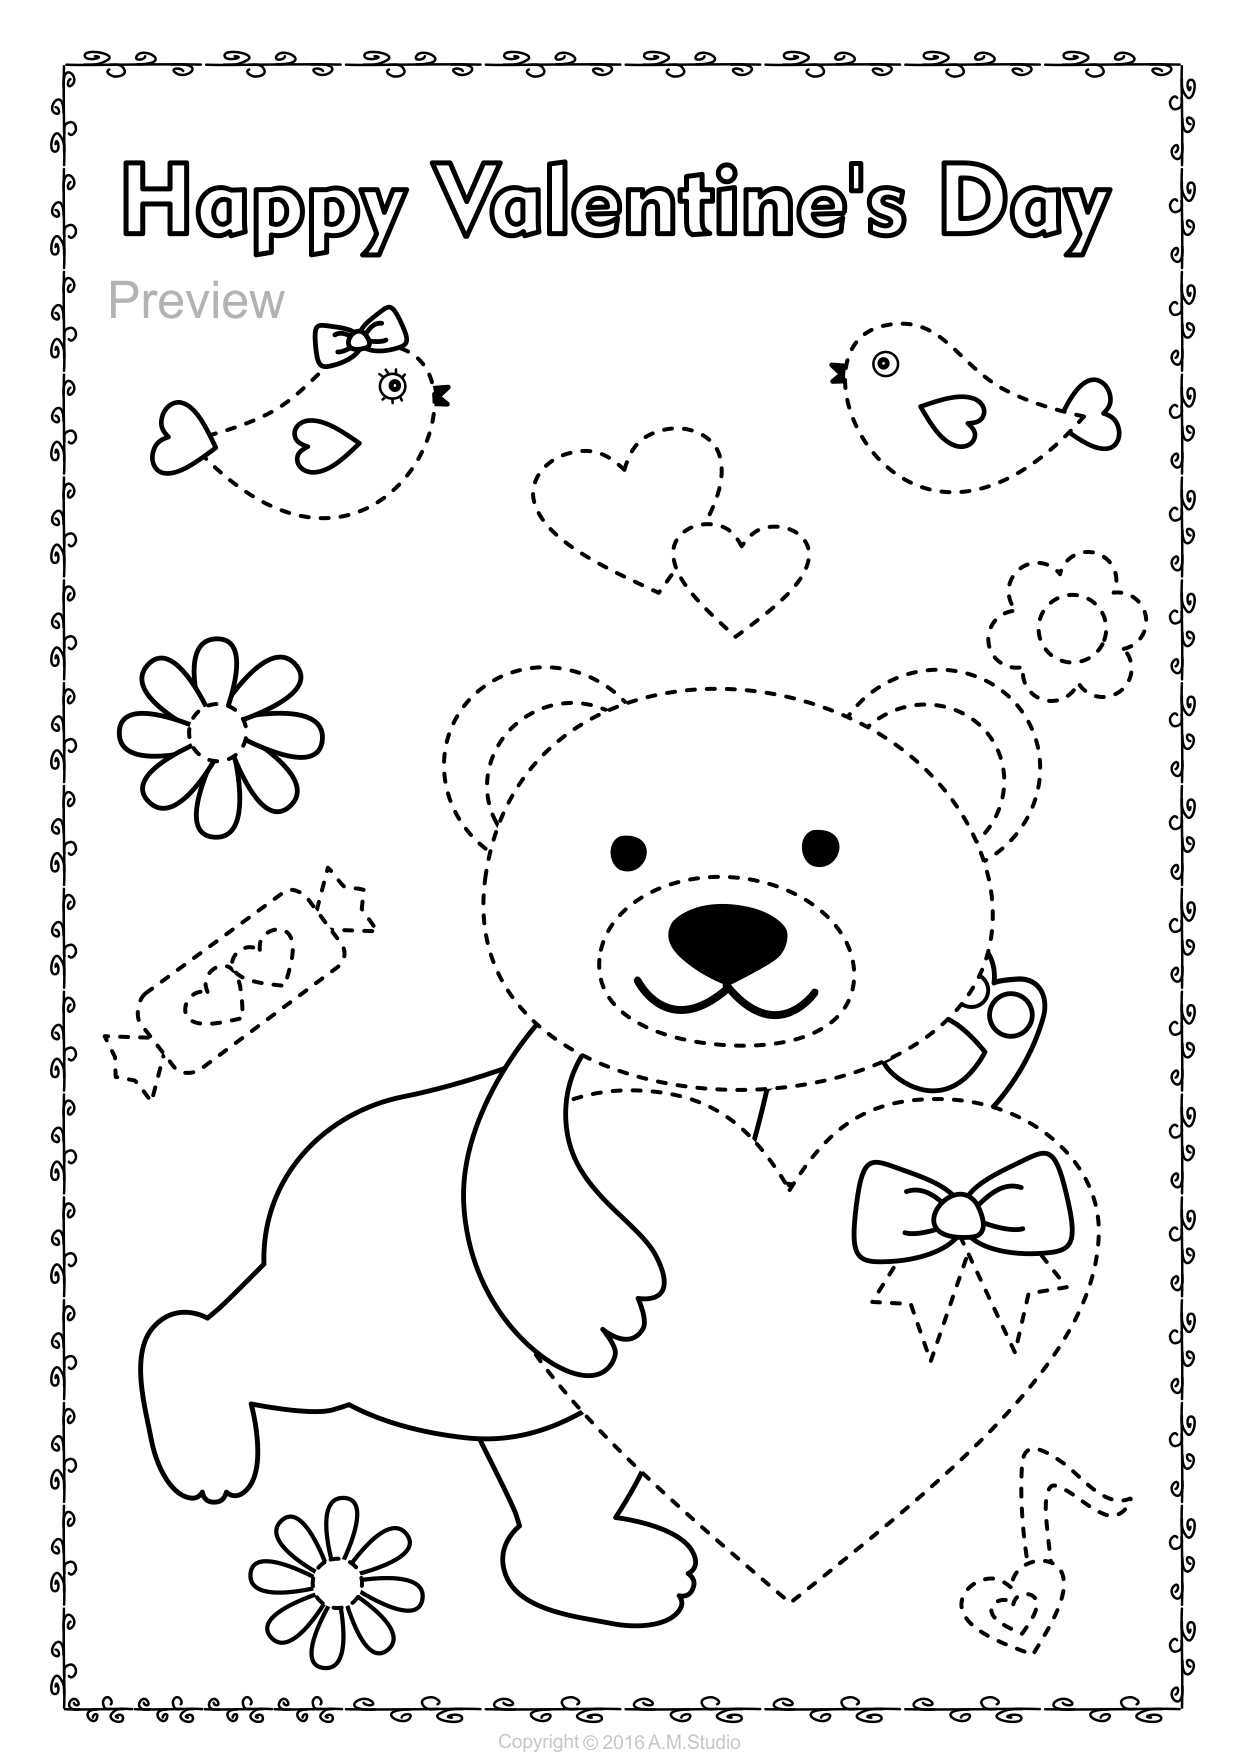 Help Your Child Develop Their Pre Writing And Fine Motor Skills With Valentine S Day Themed Trace Coloring Pages Happy Groundhog Day Super Mario Coloring Pages [ 1759 x 1240 Pixel ]